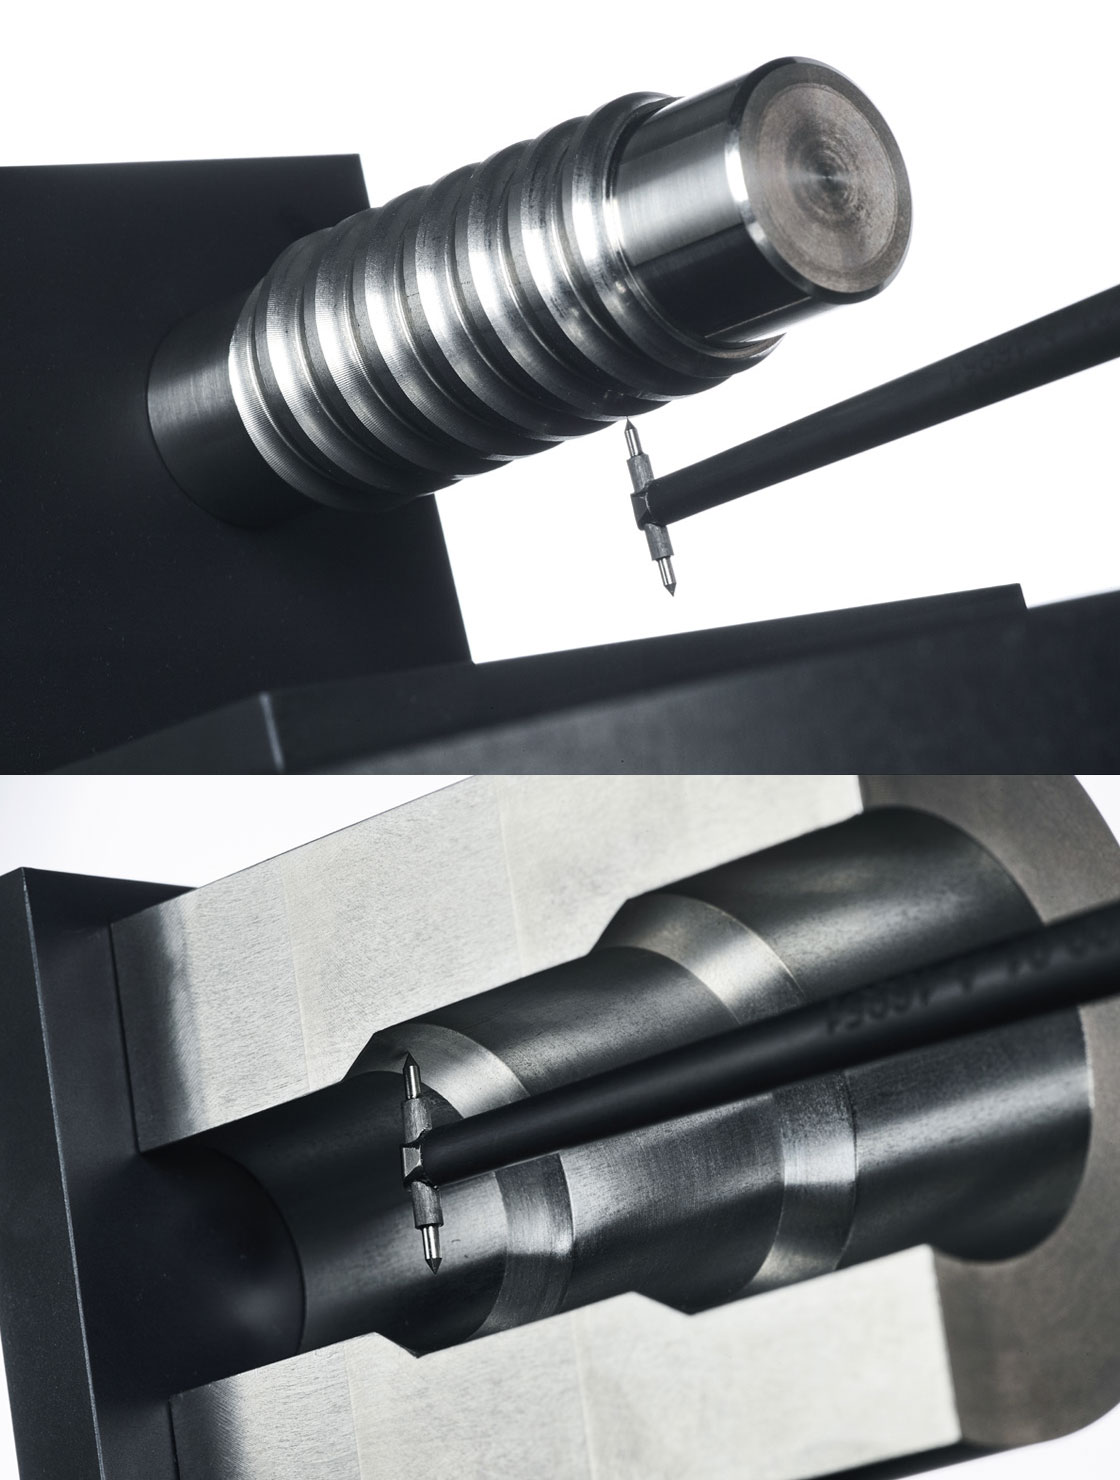 High resolution contour measuring and surface finish instrument